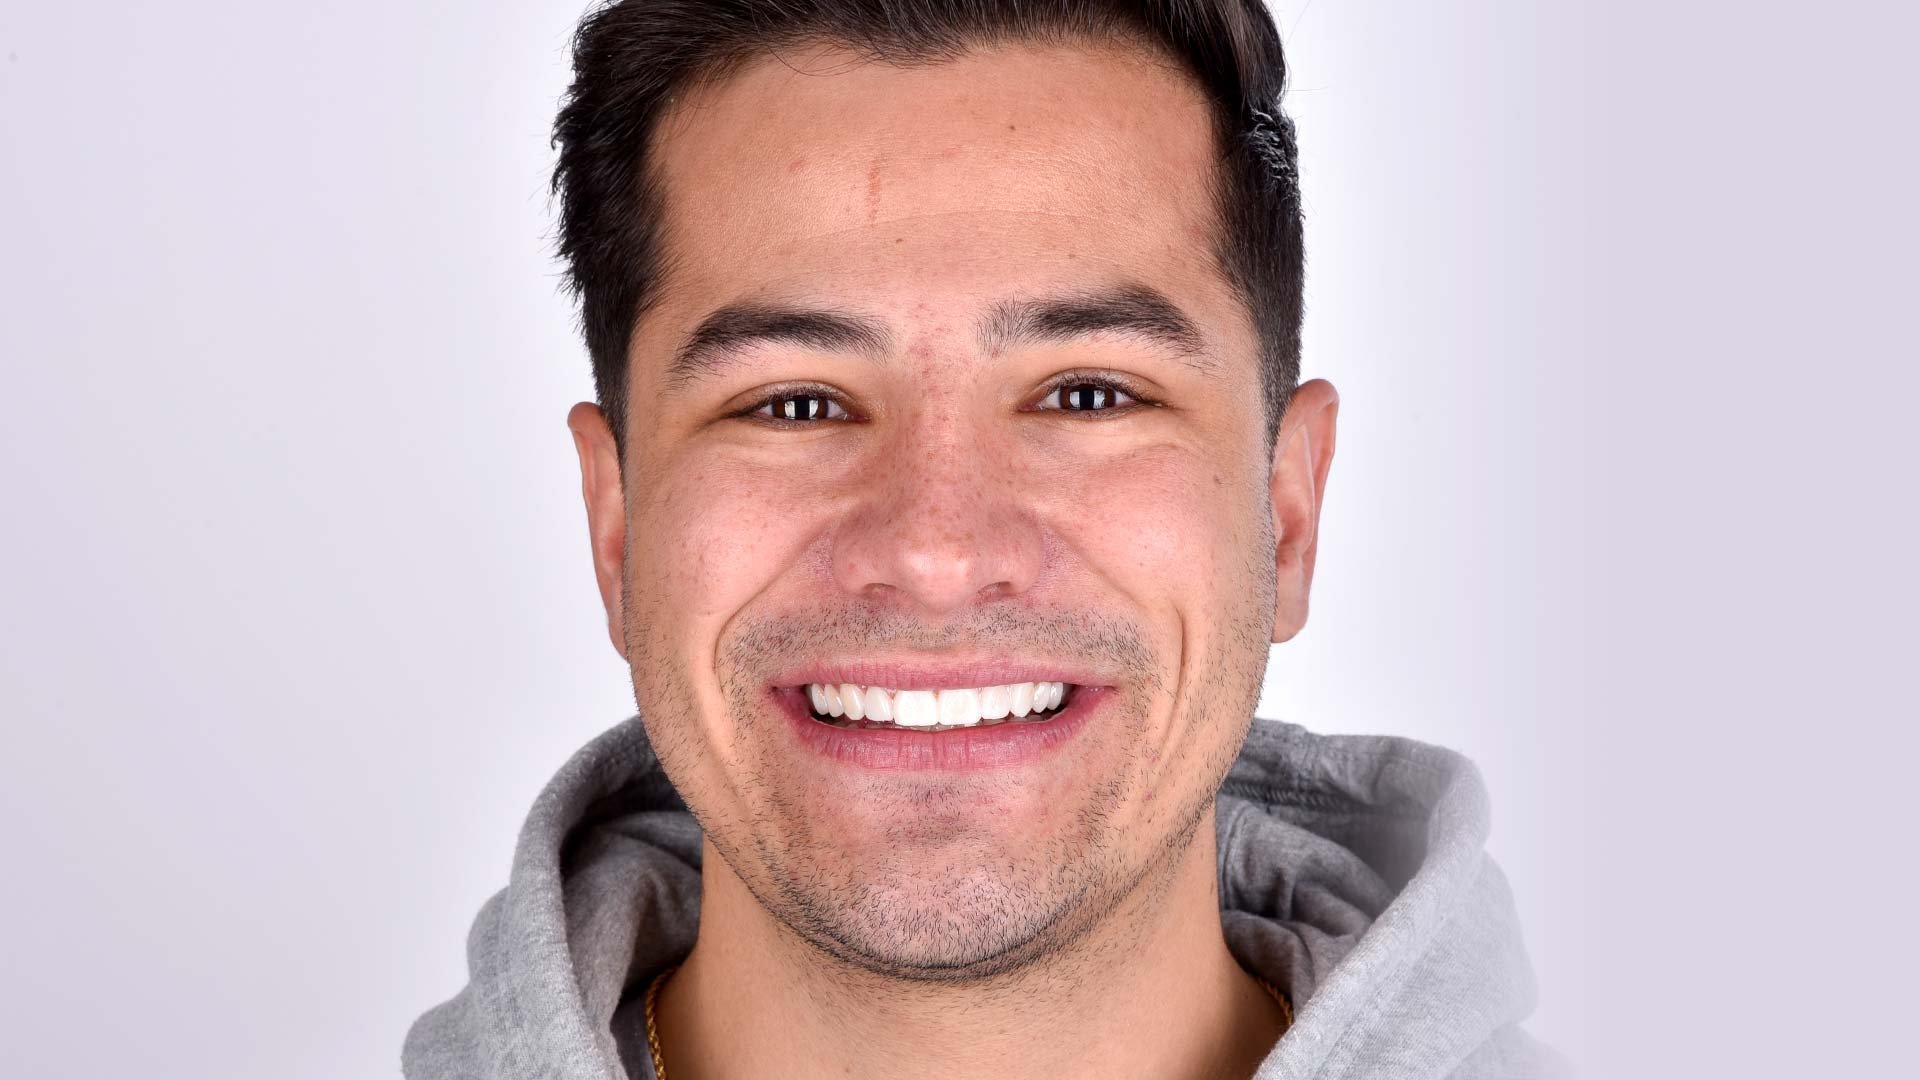 A photo of a man showing off his new, natural-looking smile after having Digital Smile Design dental treatment